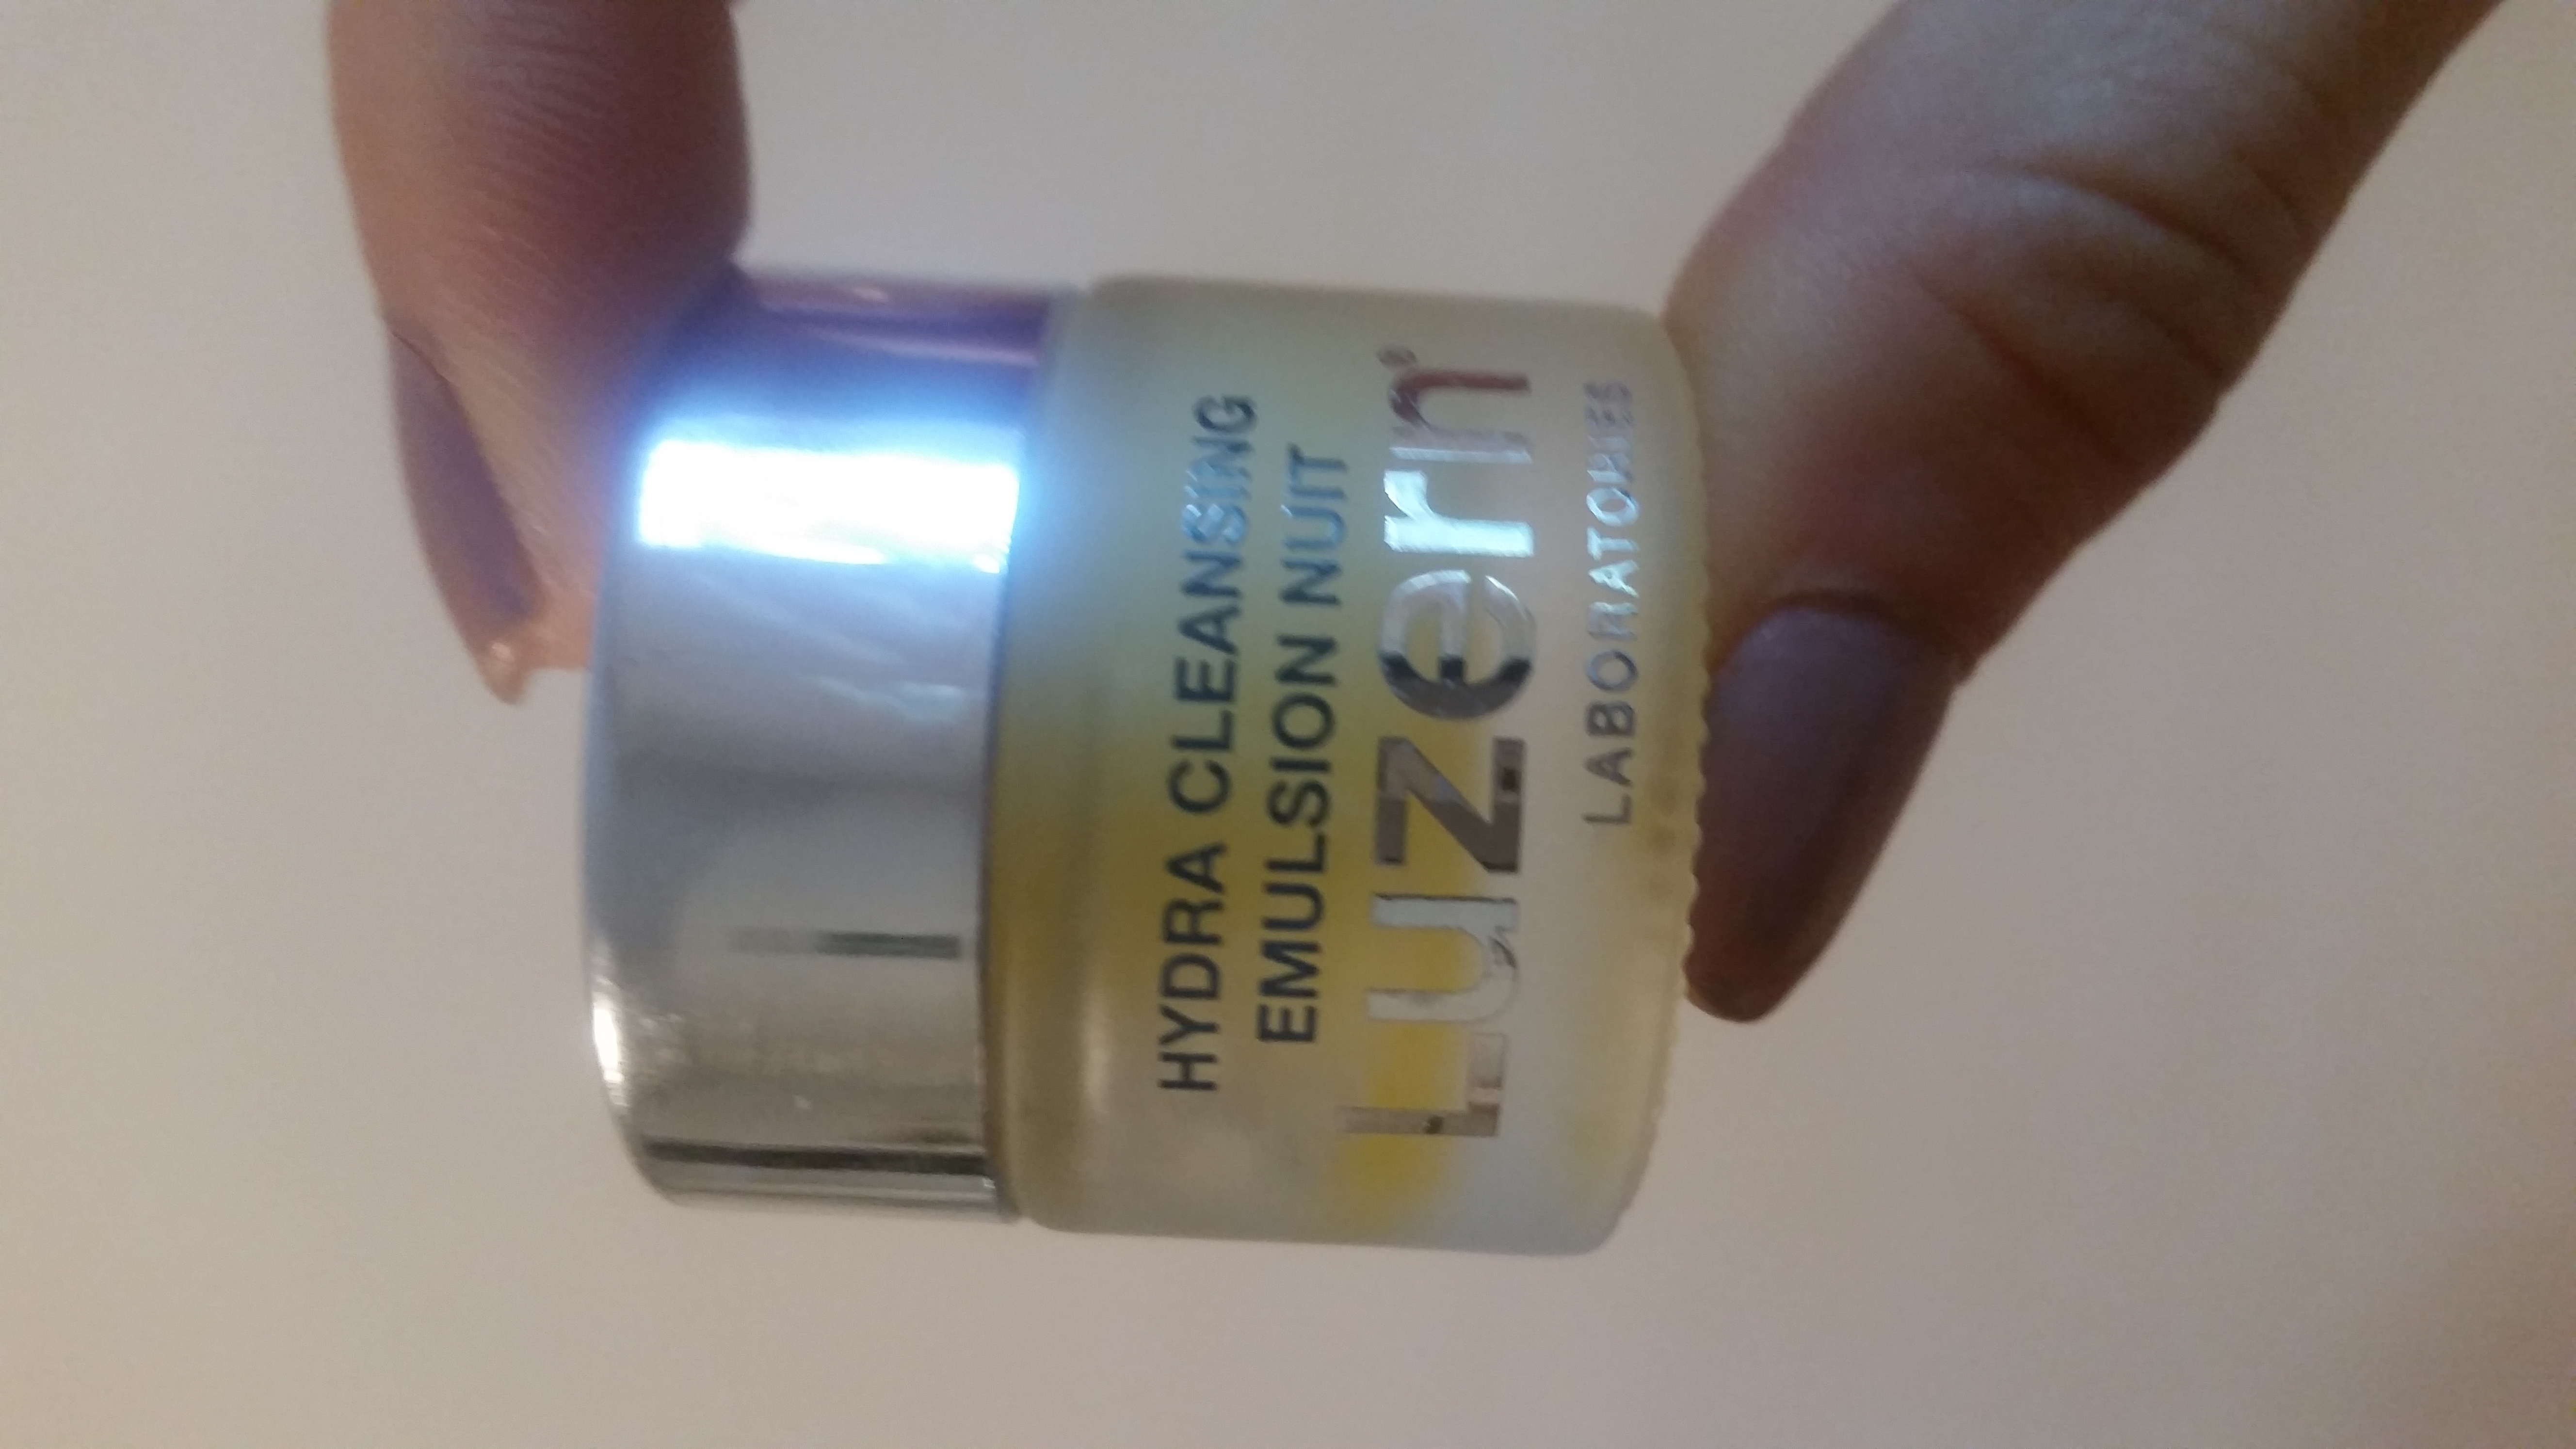 Luzern Hydra Cleansing Emulsion